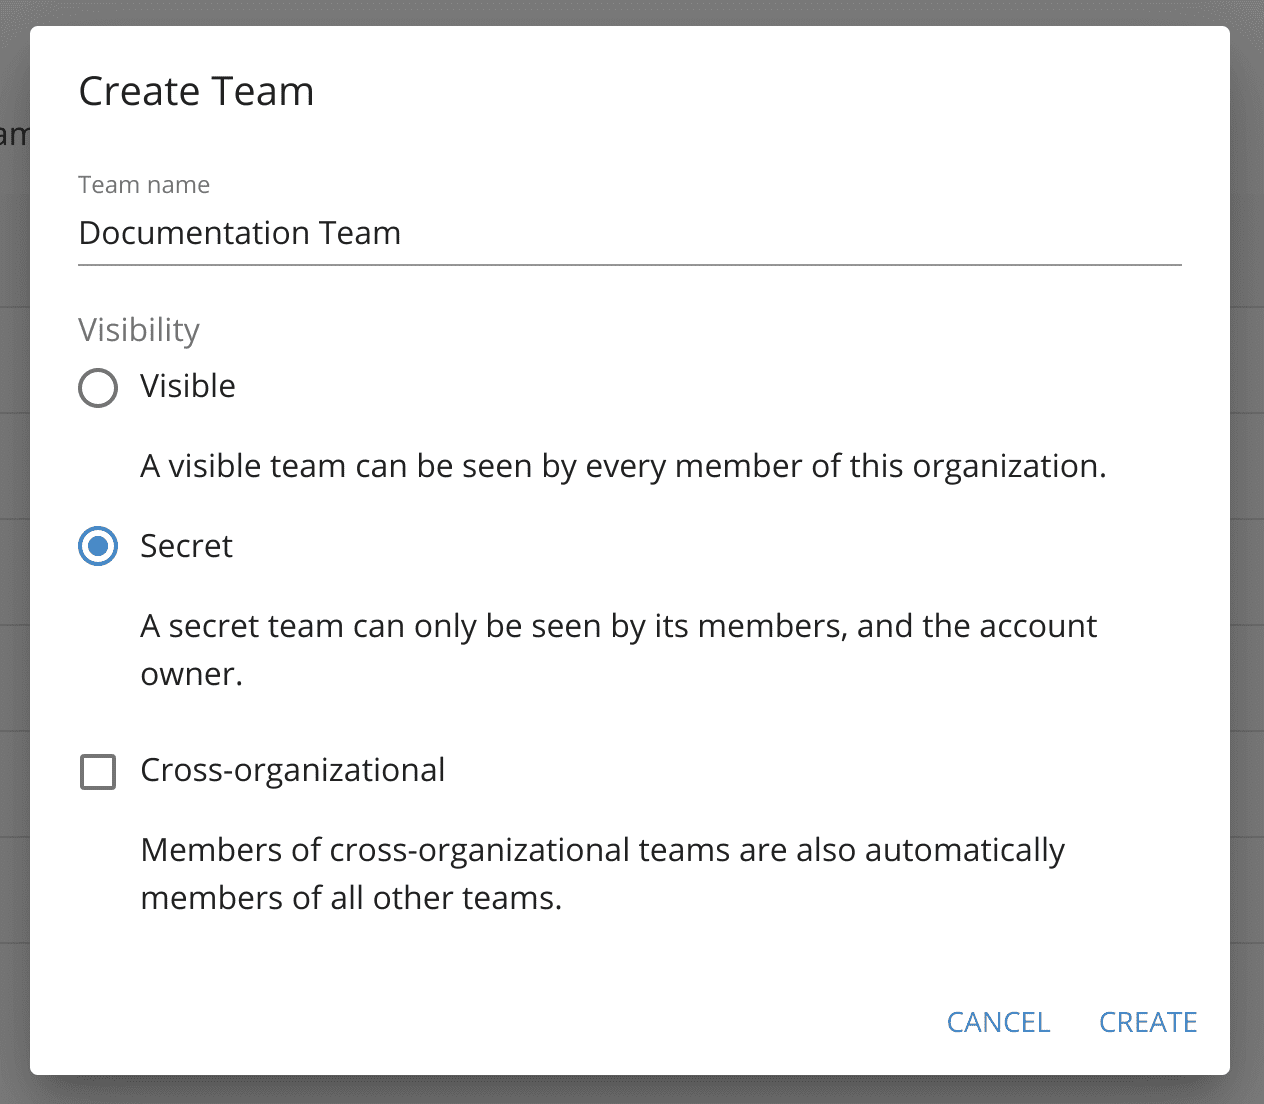 Select the settings for the new team